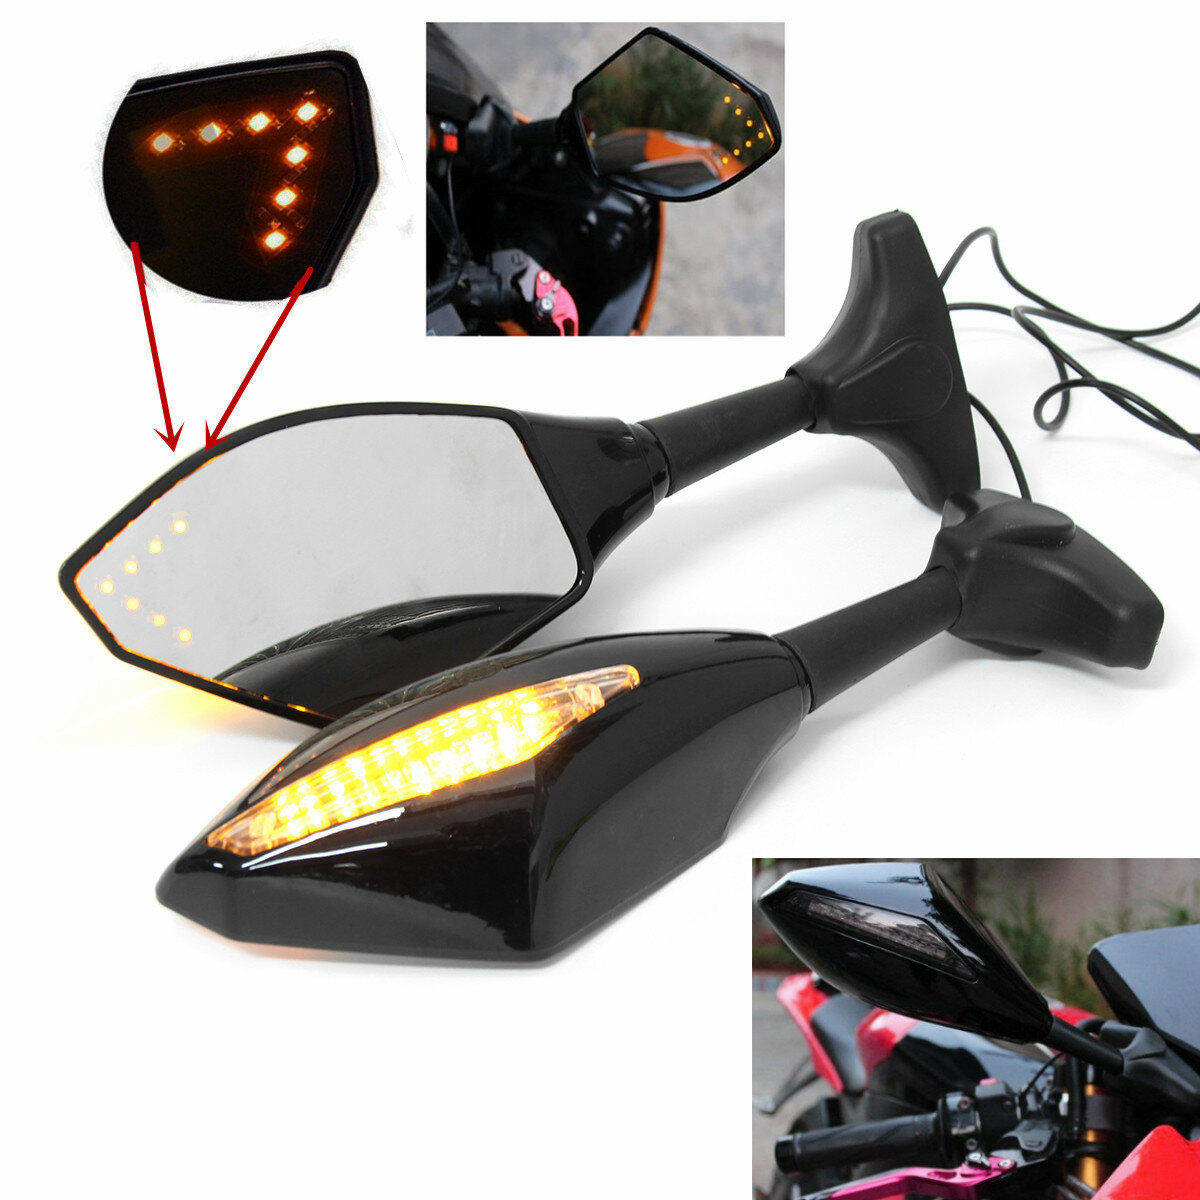 Pair Motorcycle LED Arrow Turn Signal Rear View Mirrors For Honda/Suzuki/Kawasaki/Yamaha